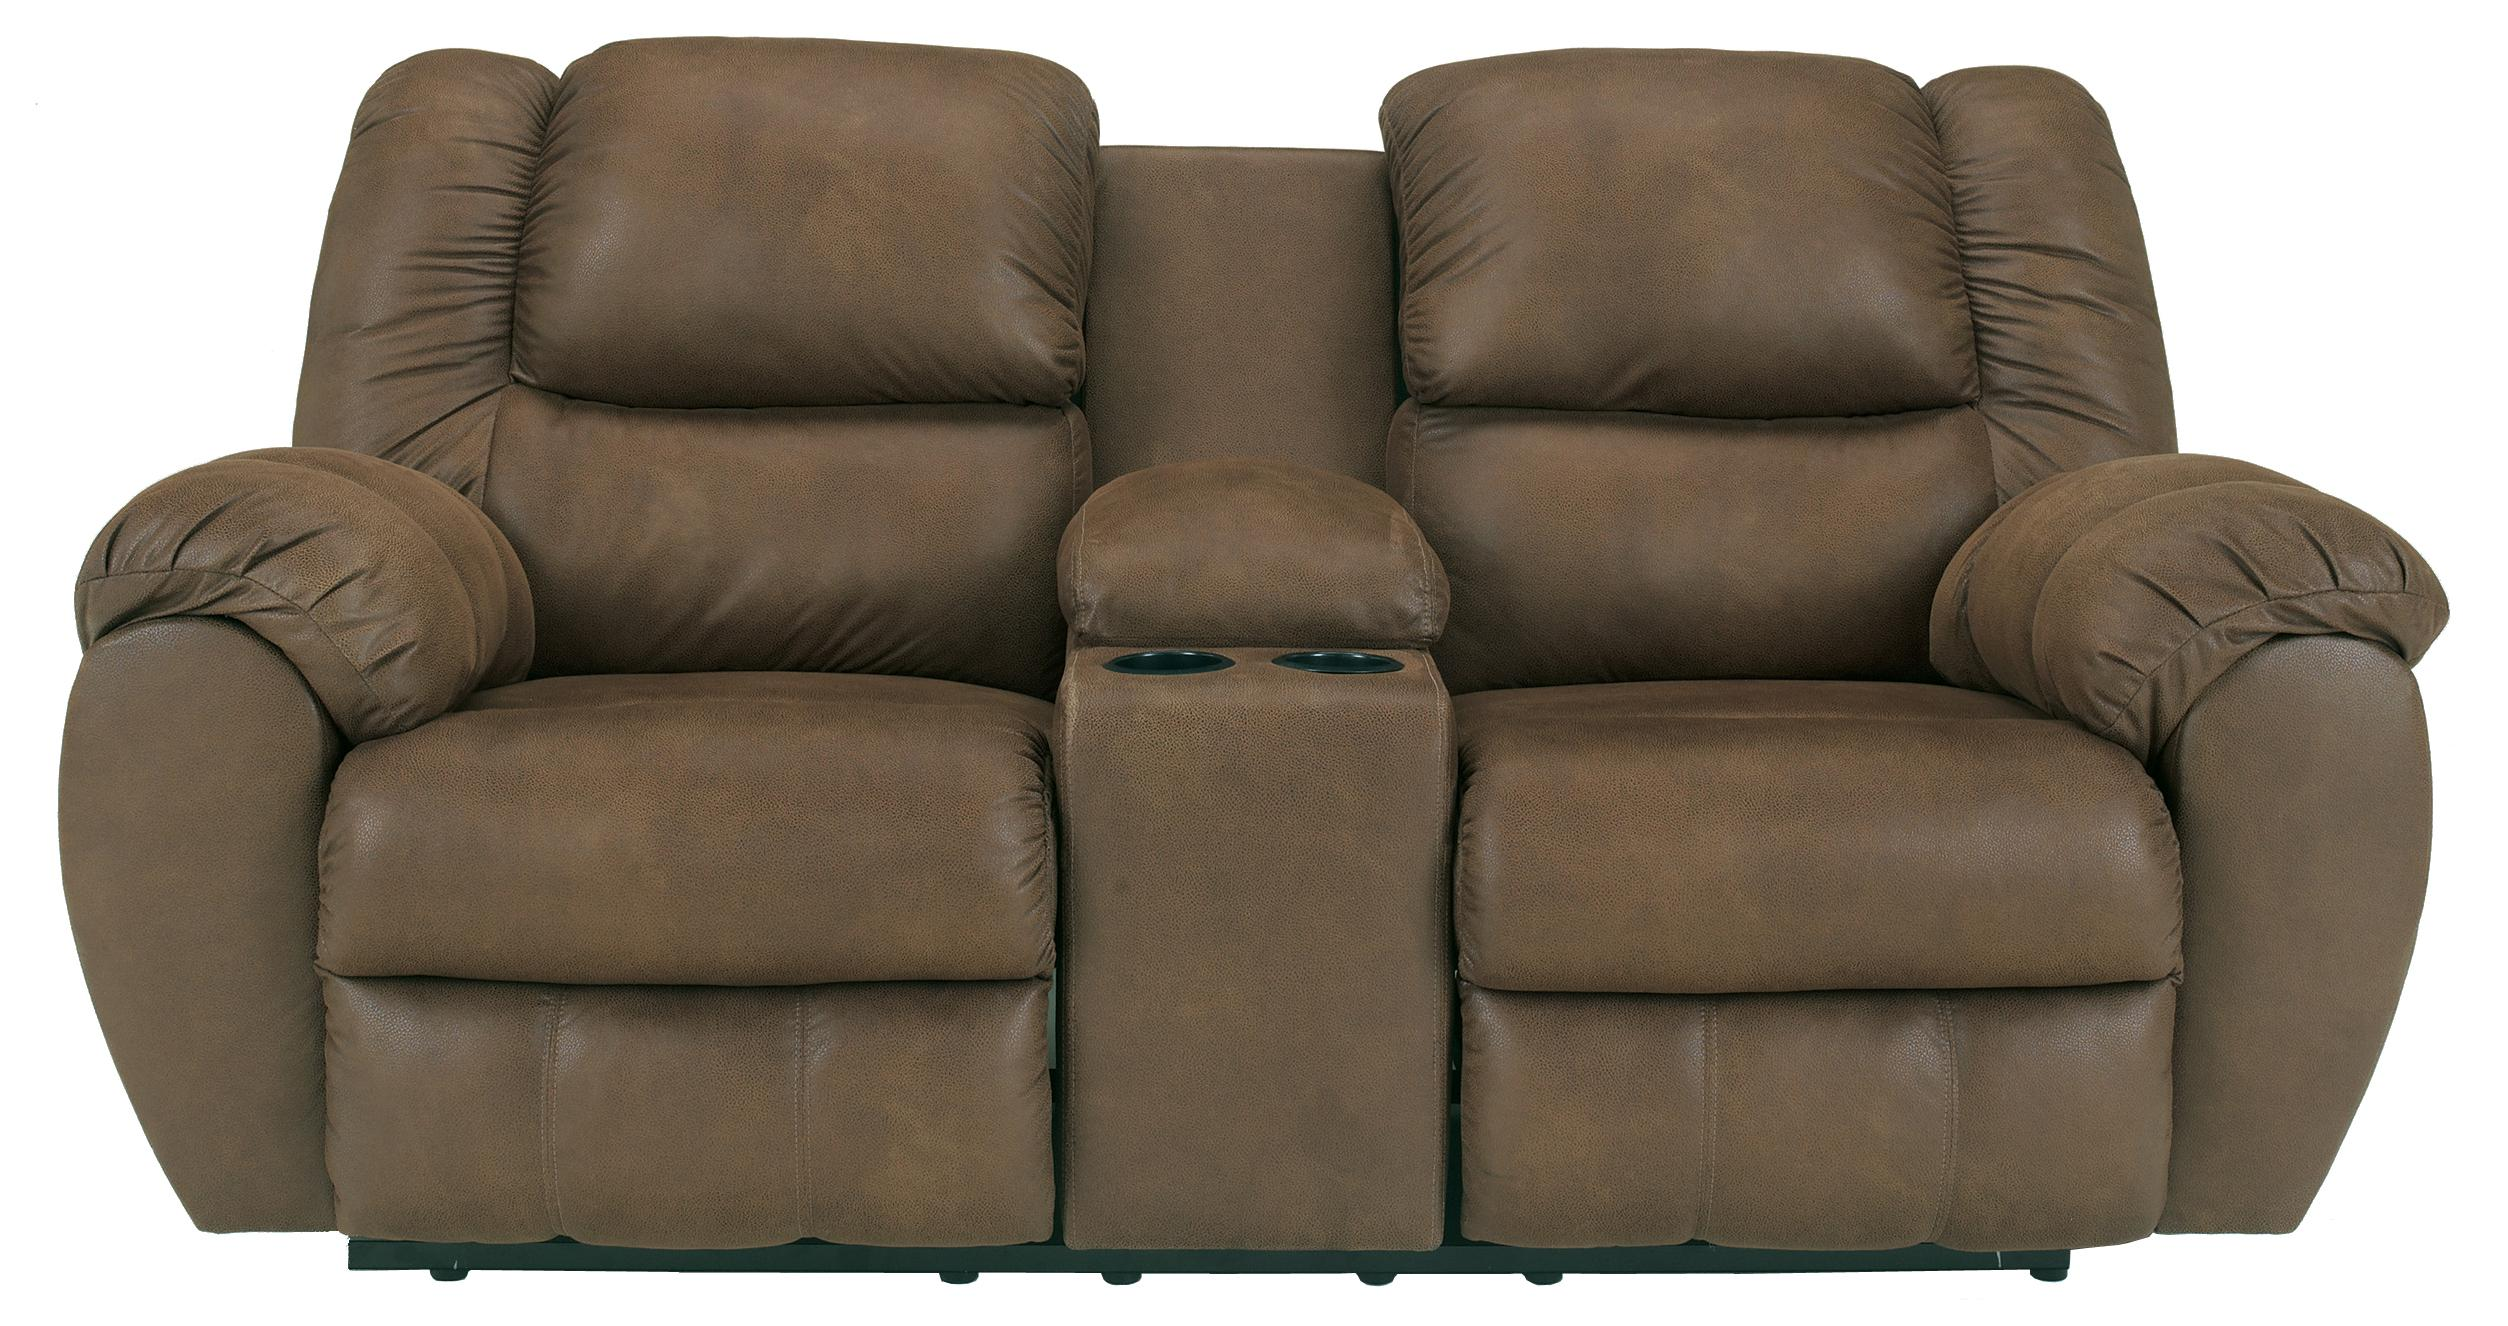 Benchcraft Quarterback - Canyon Reclining Loveseat w/ Console - Item Number: 3270194